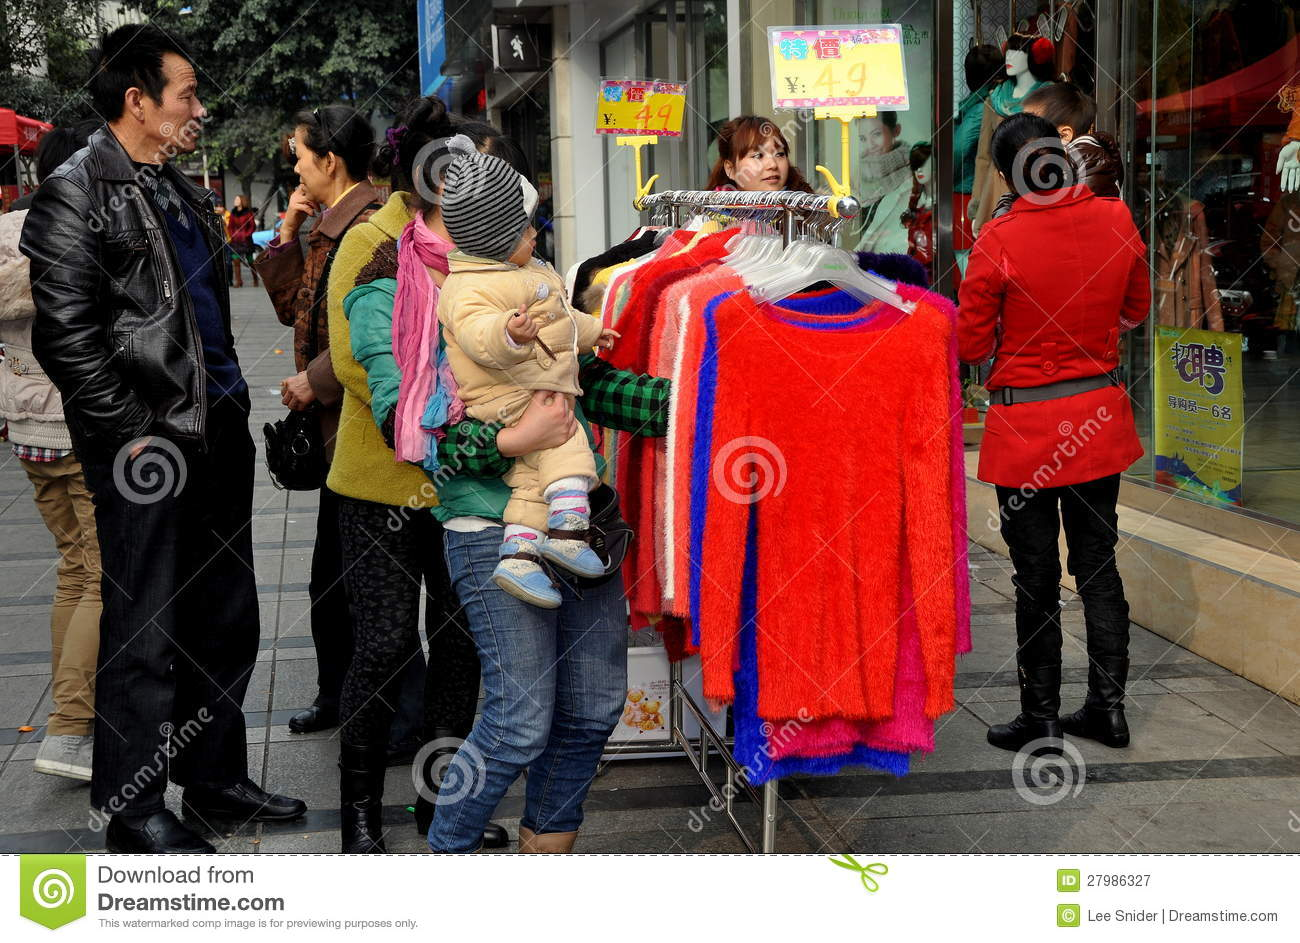 market research clothing in china The report clothing accessory market in china to 2021 - market size, development, and forecasts offers the most up-to-date industry data on the actual market situation, and future outlook for clothing accessories in china the research includes historic data from 2010 to 2016 and forecasts until.